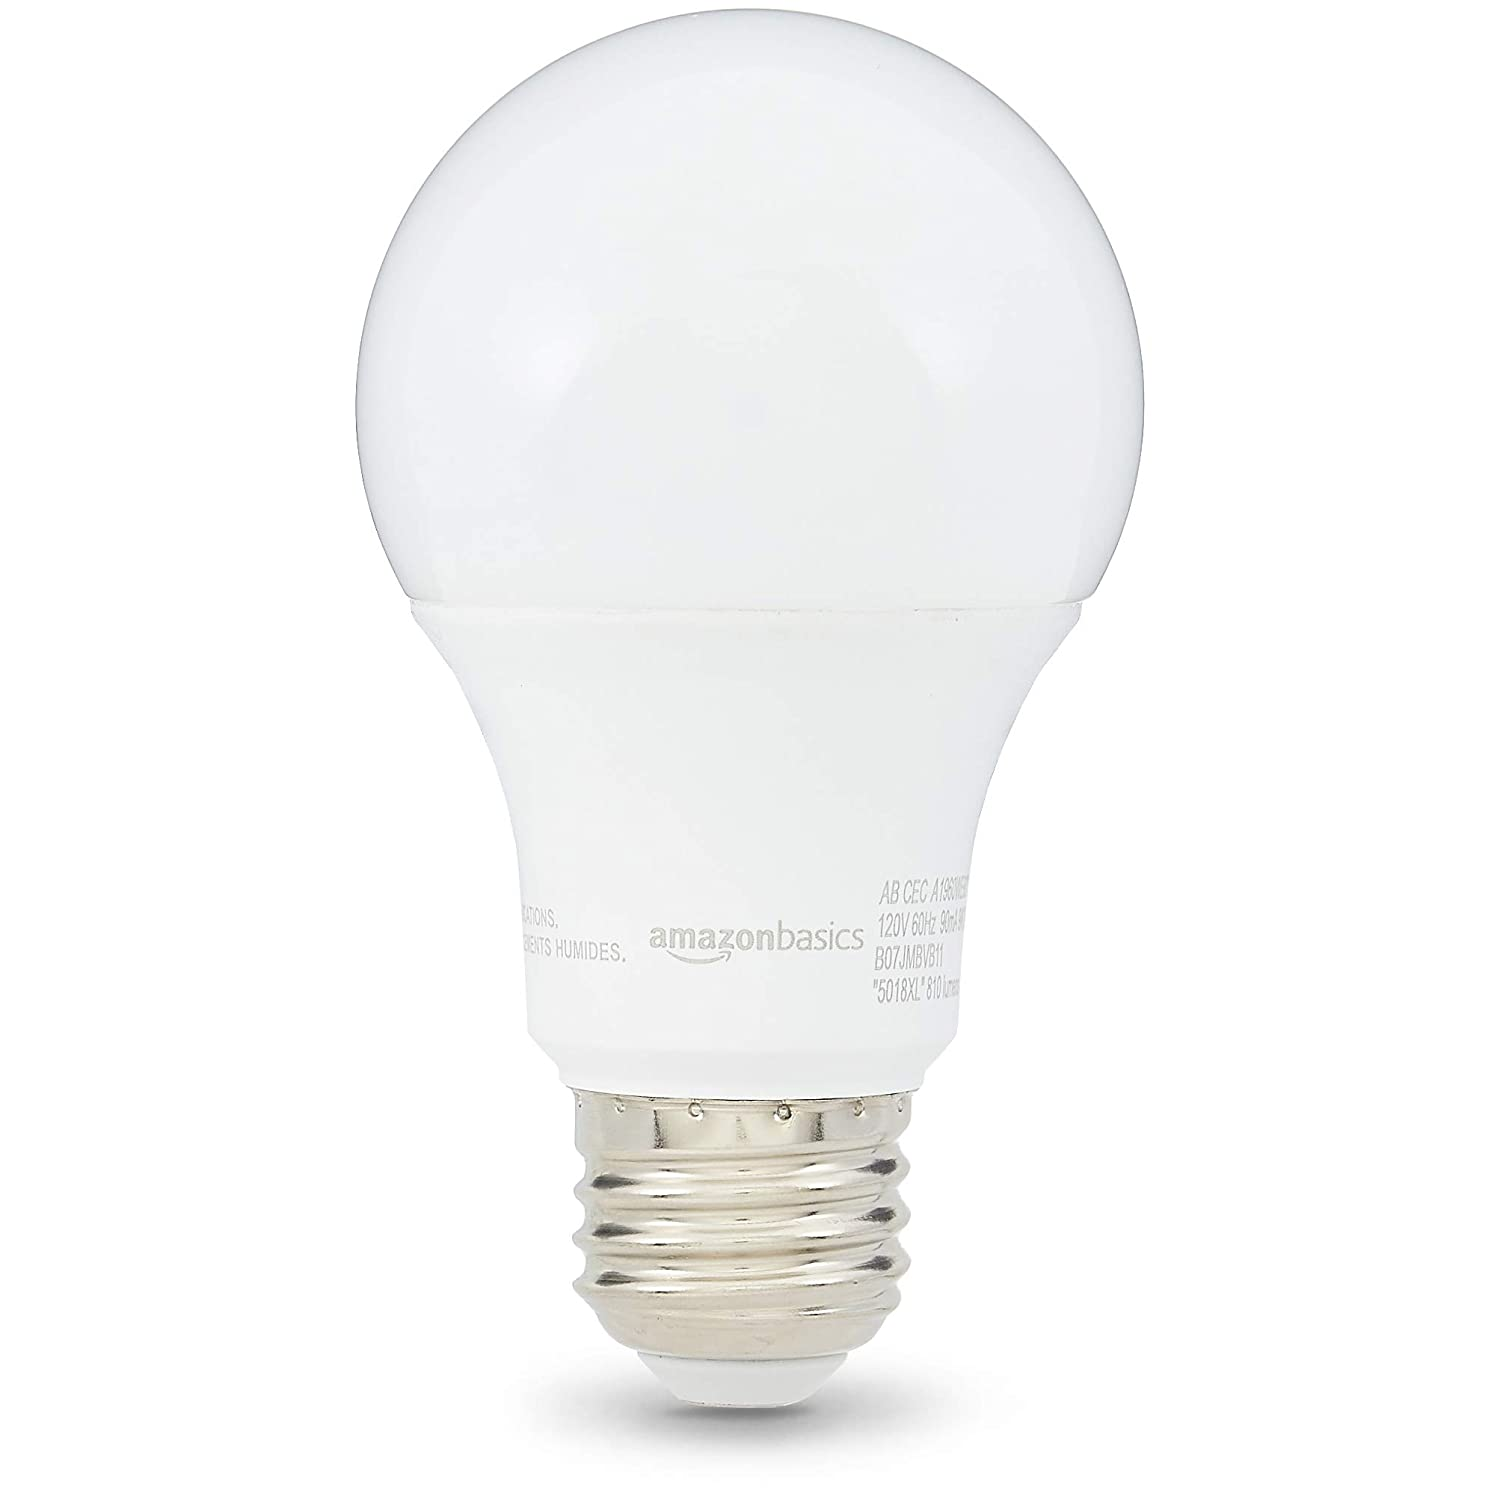 Daylight Basics 60W Equivalent 6-Pack FG-03402 Dimmable Clear A19 LED Light Bulb CEC Compliant